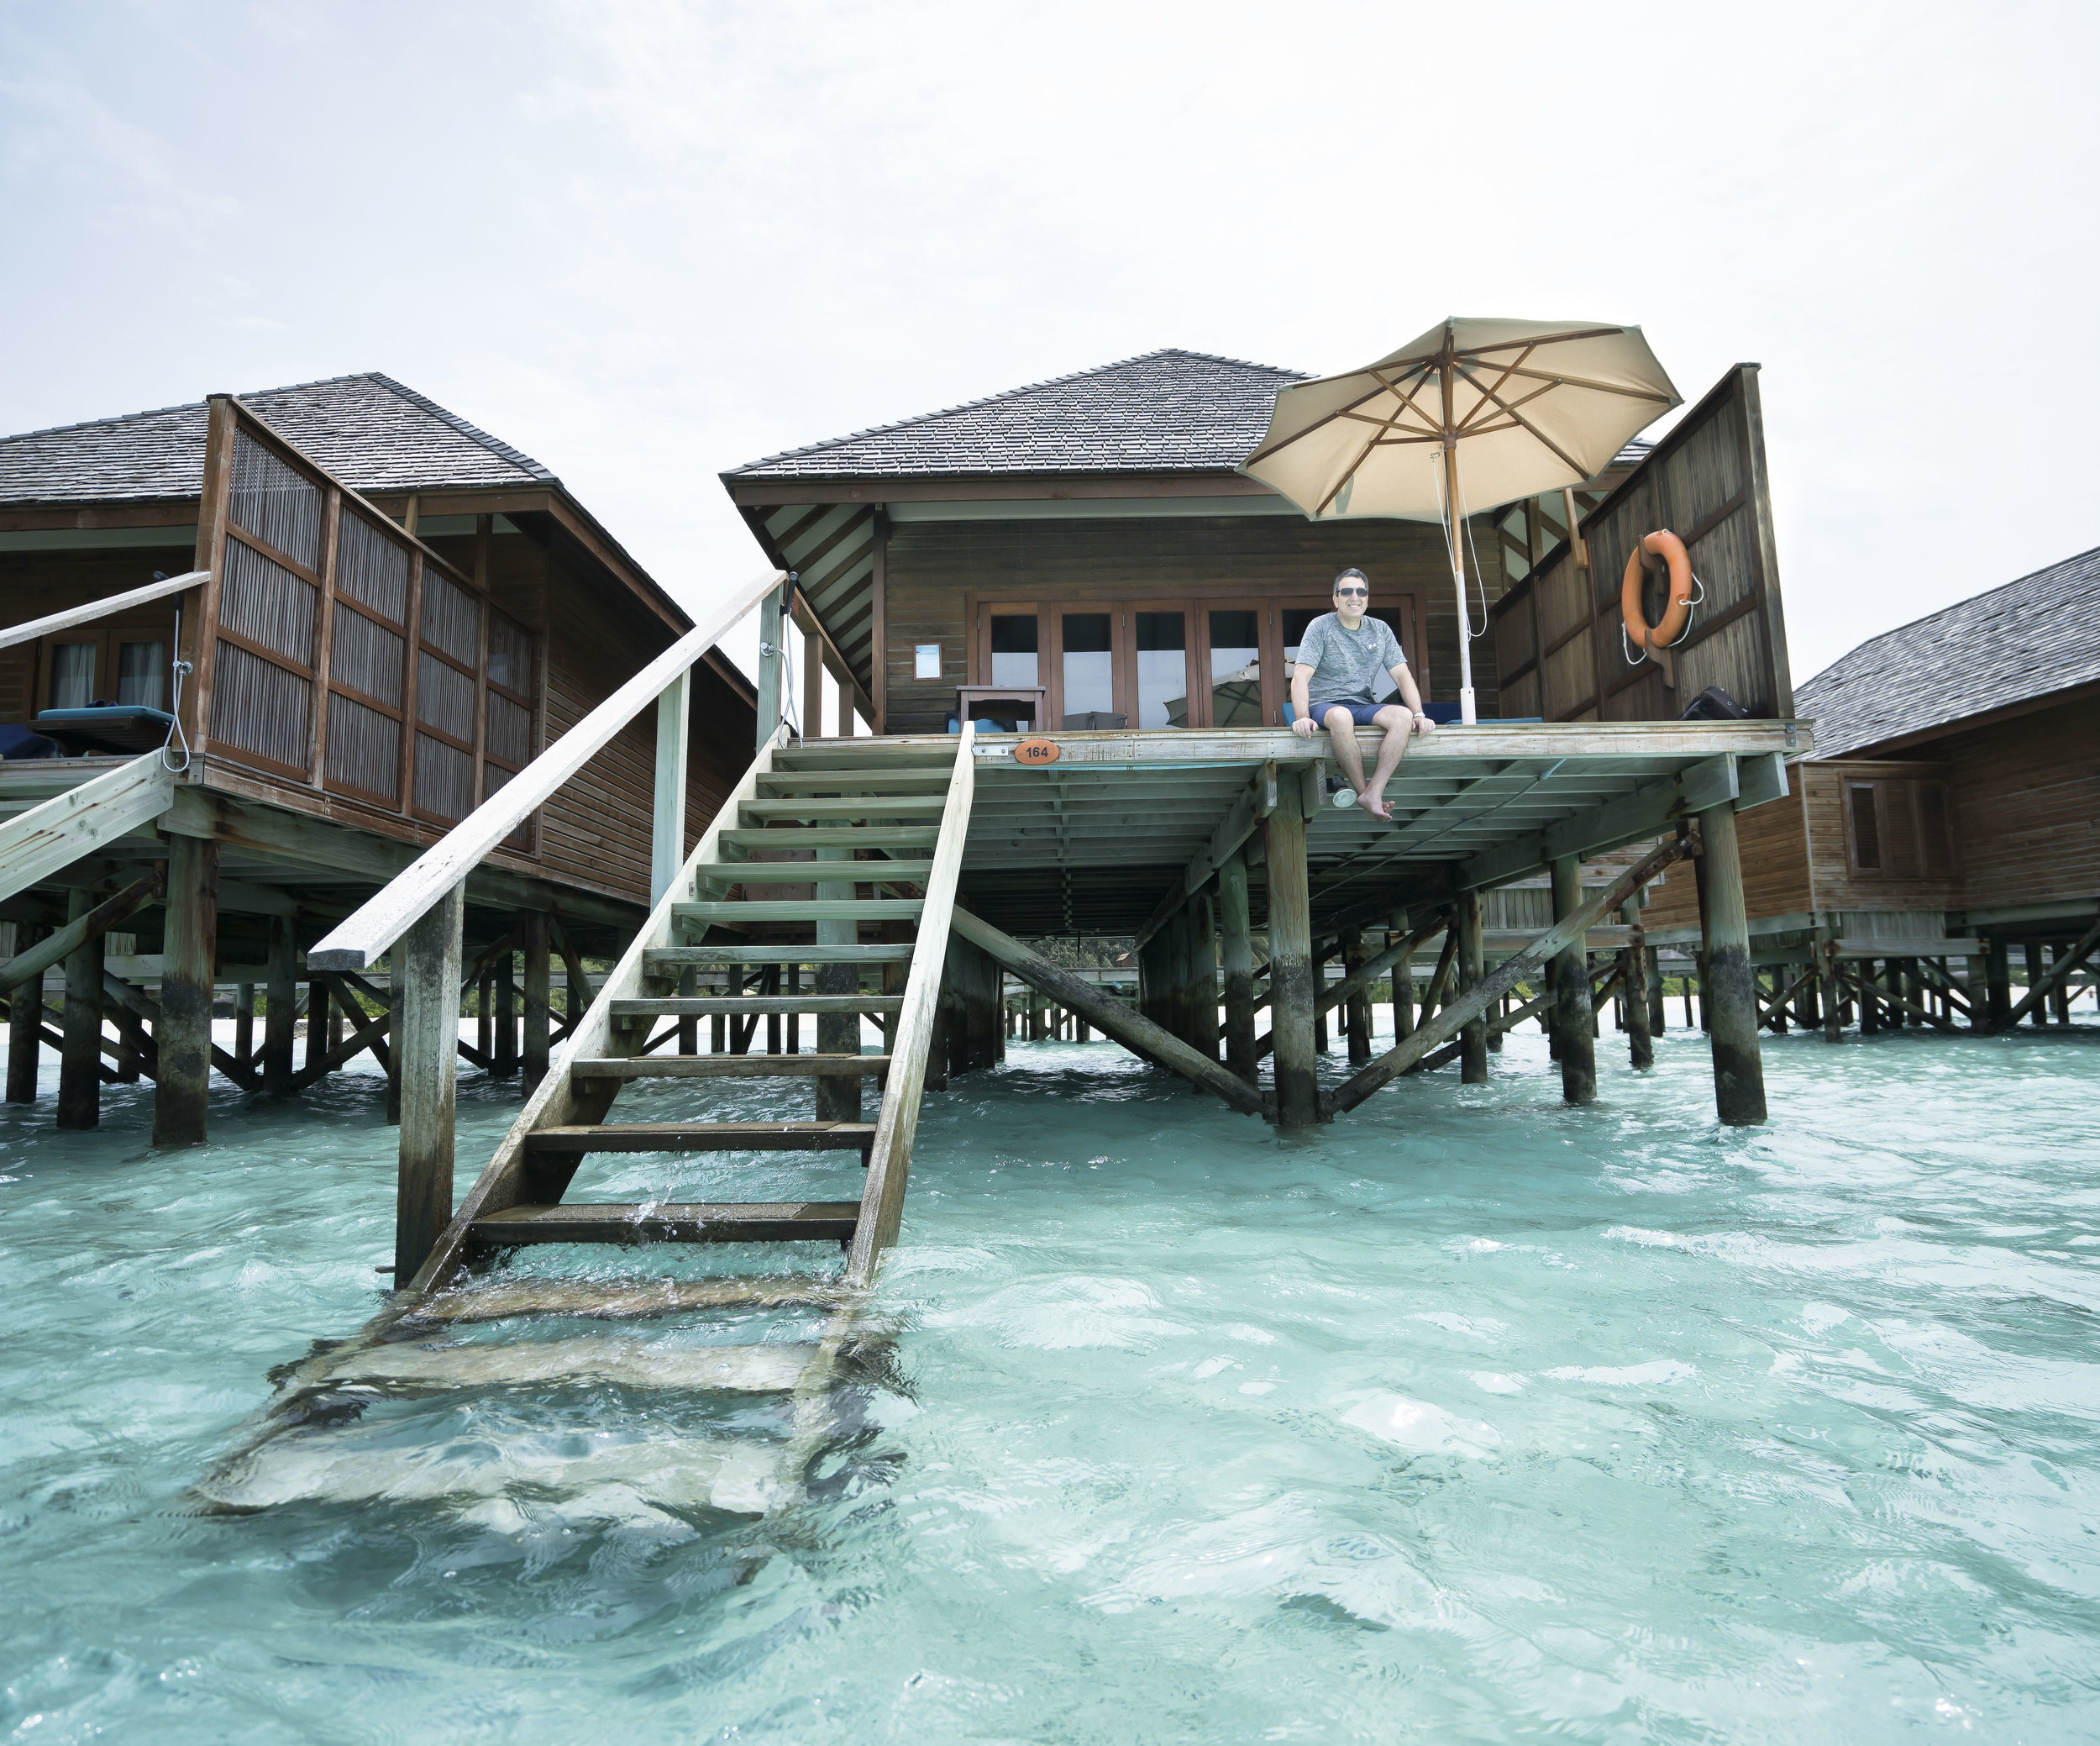 One very happy guy. With a very few short steps you're in the reef. You could also just sit on the deck with a glass of wine and watch the dolphins cruise by... Paradise...